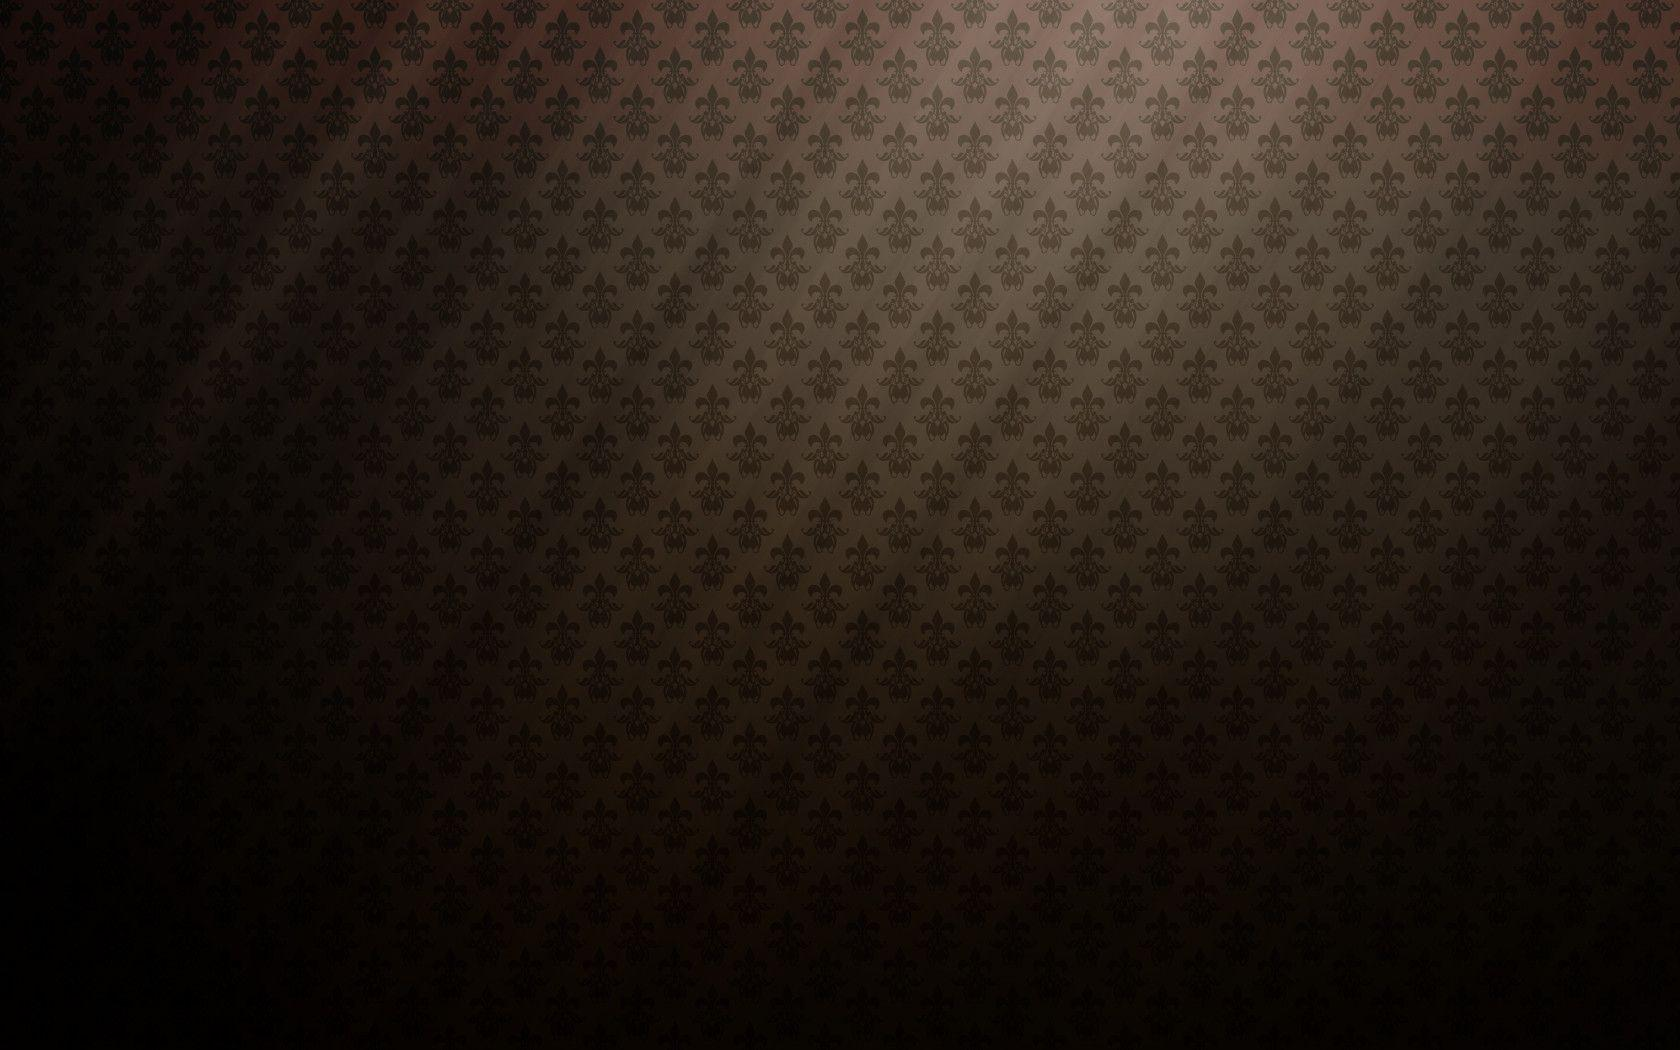 Wallpapers For > Dark Brown Gradient Background